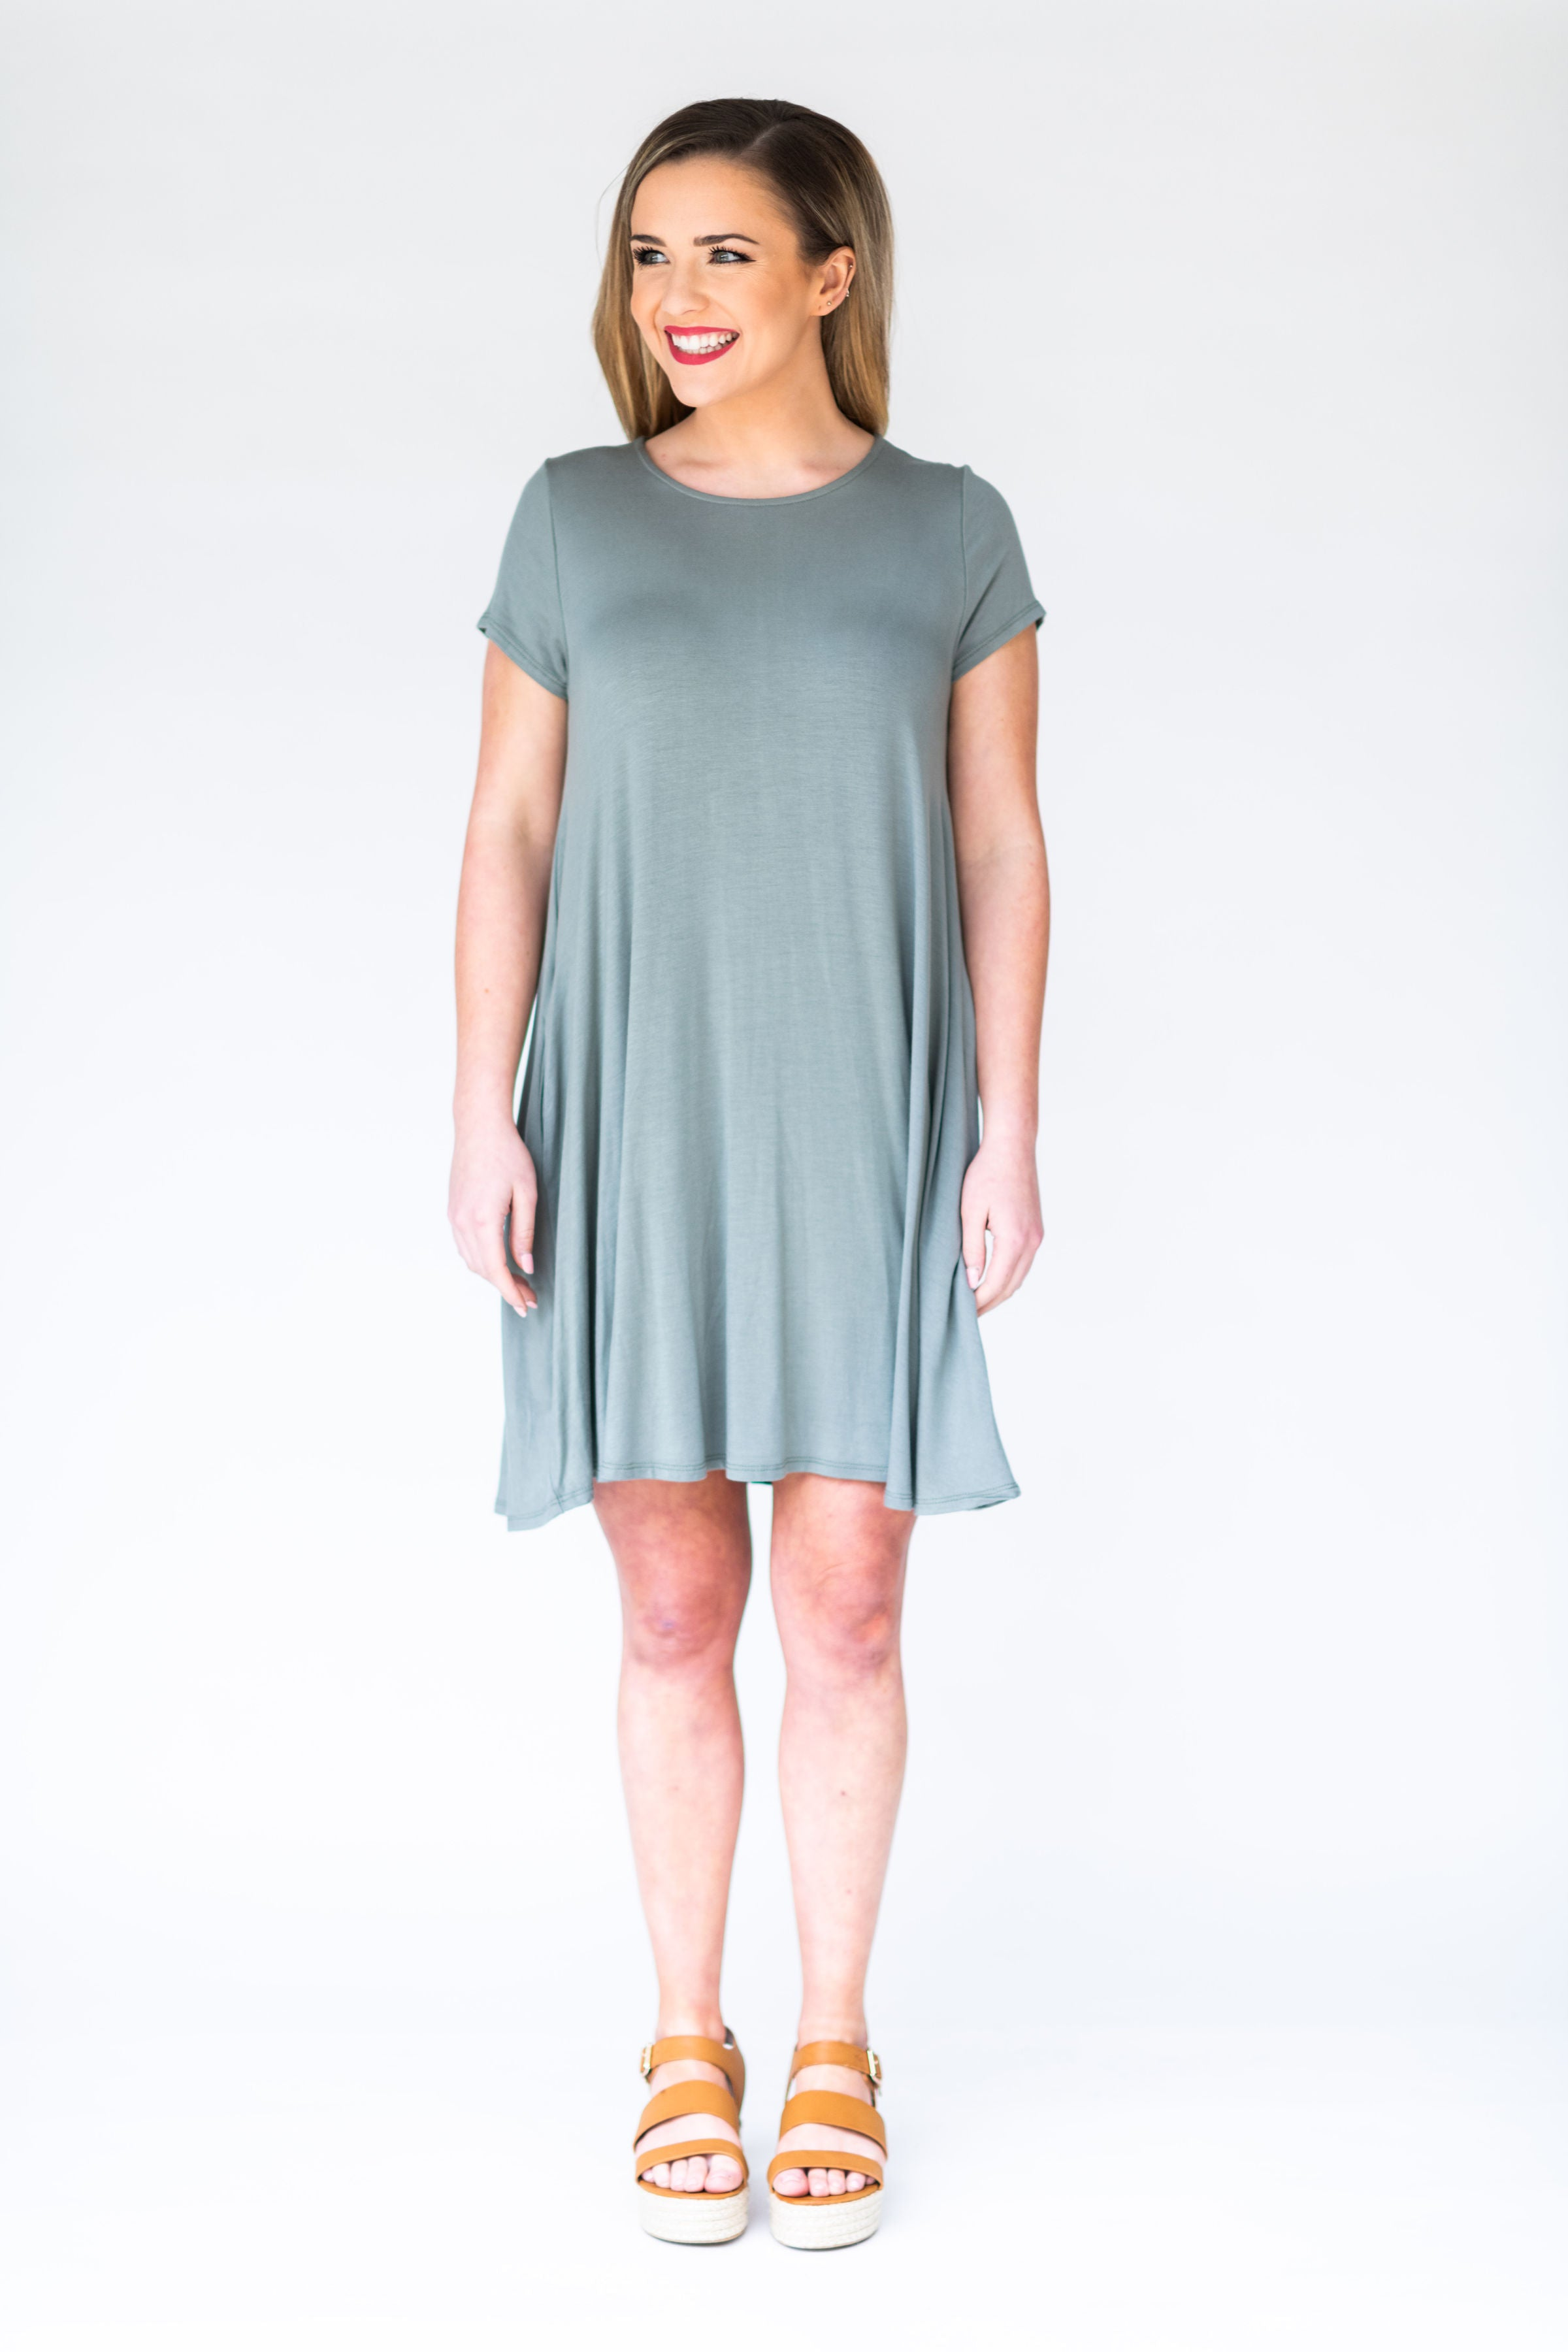 Simplicity is Key T-Shirt Dress with Pockets:  Green Moss